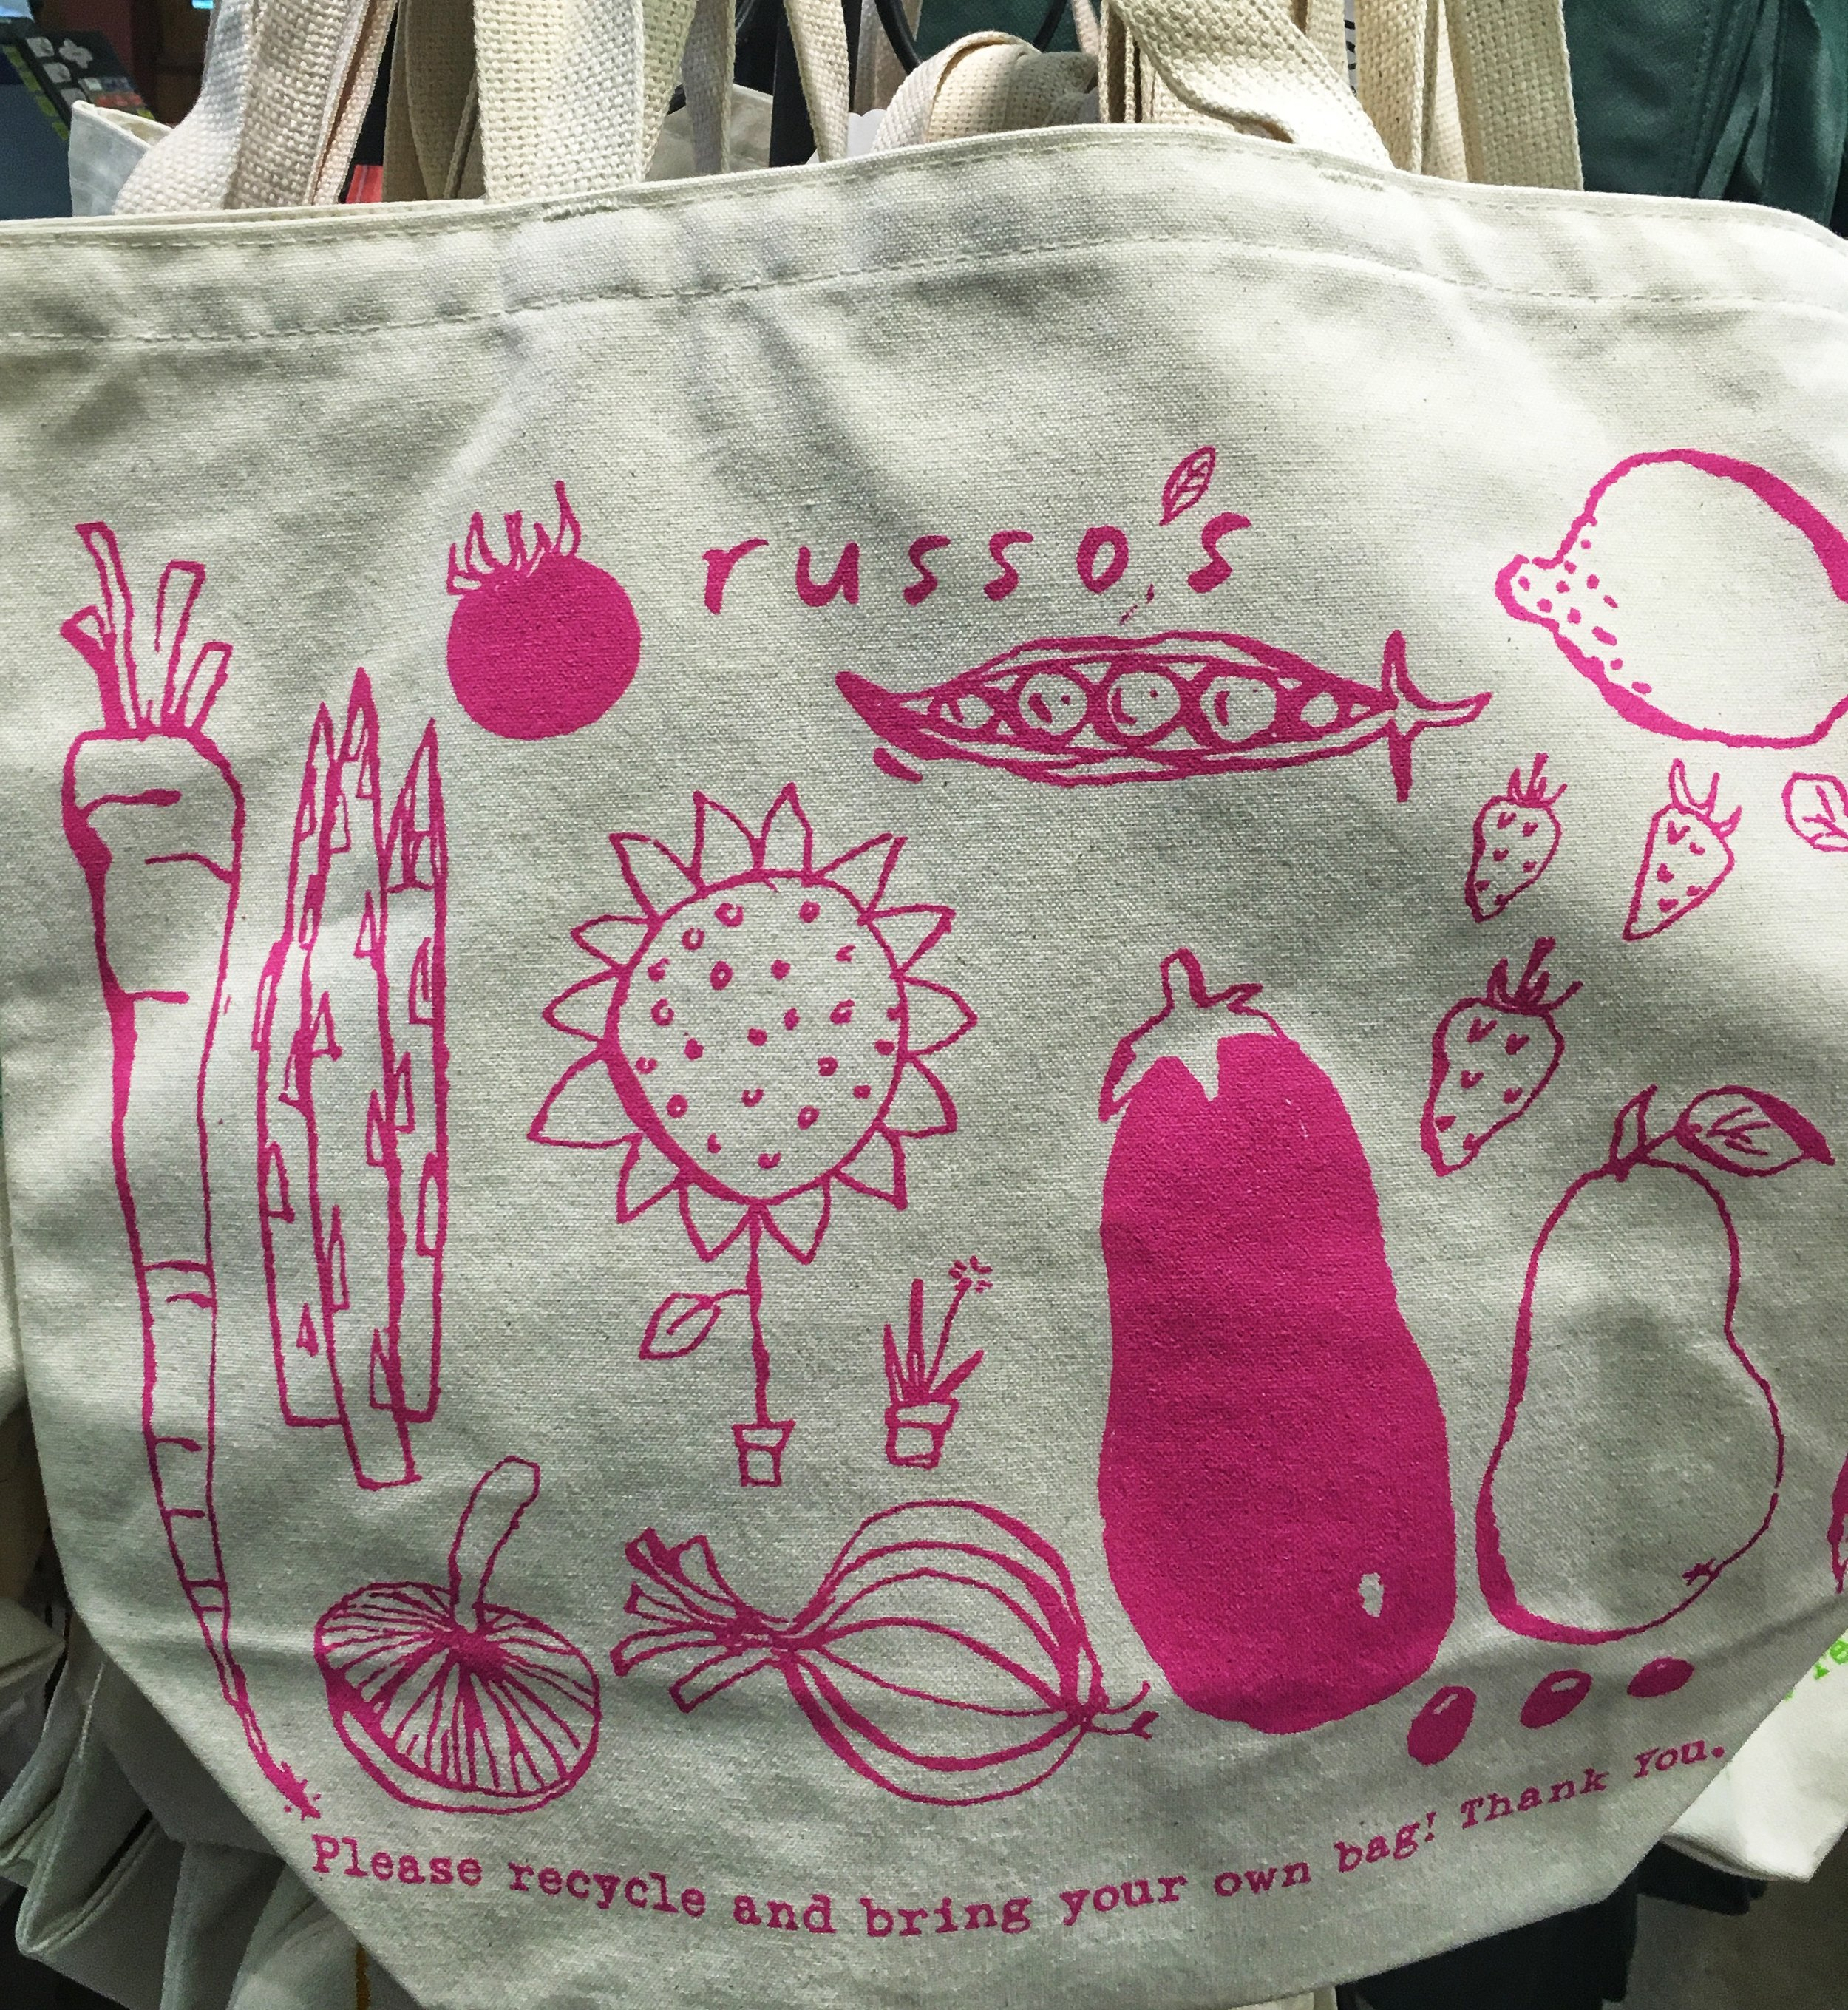 Win a Russo's Tote this month and be the most fashionable person at the market!